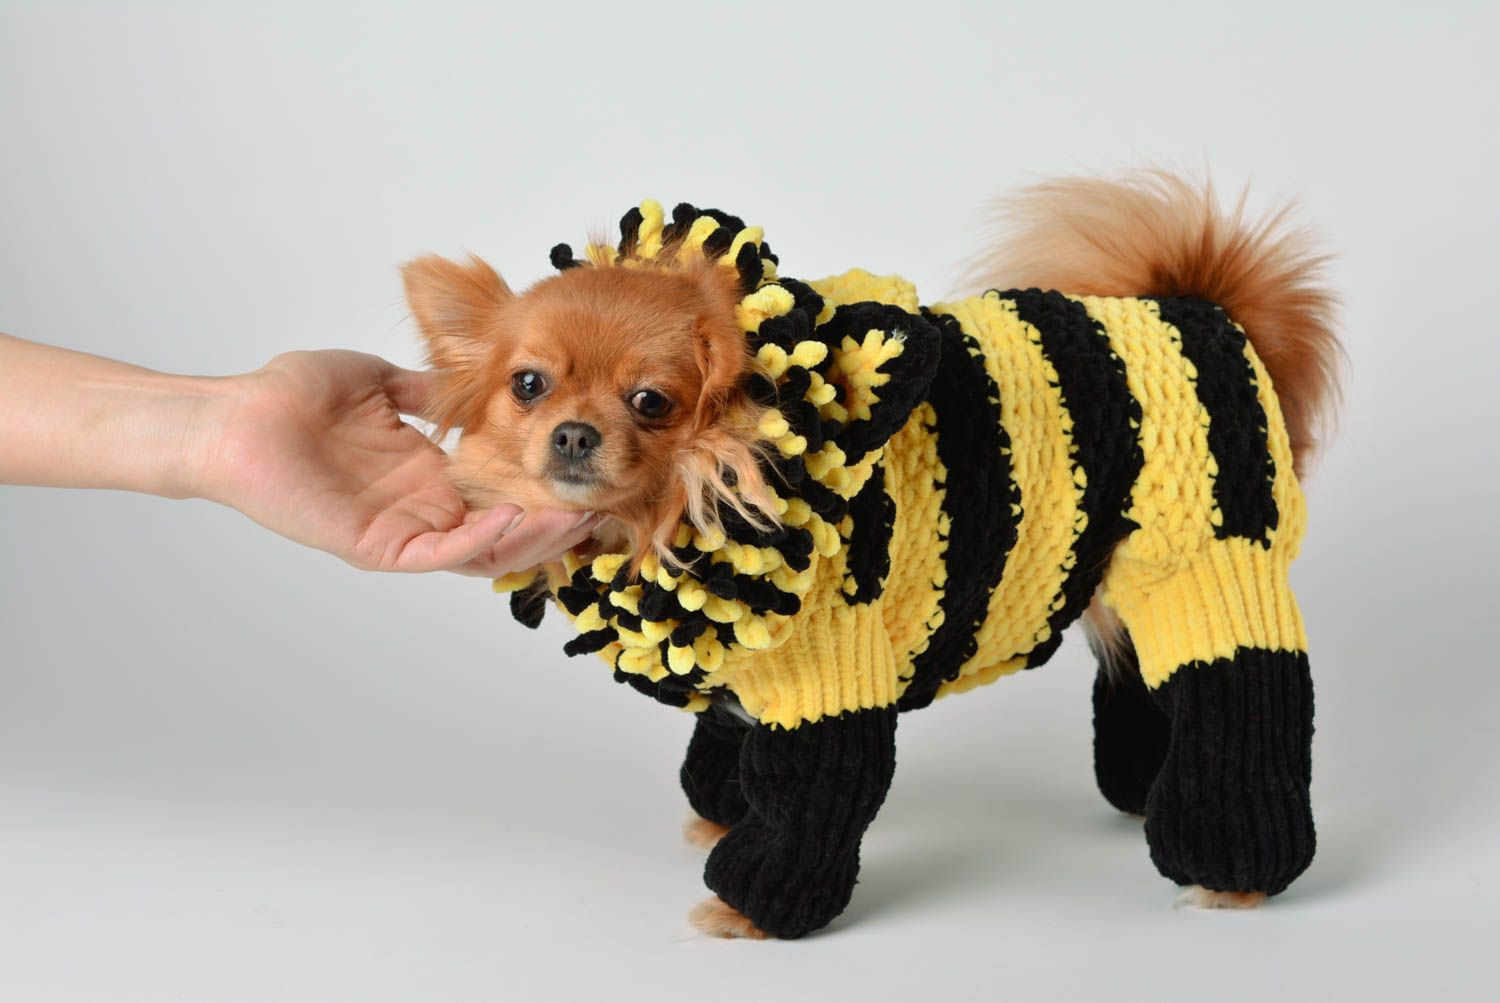 Handmade knitted suit for dogs bright designer clothes for pets cute accessory photo 2